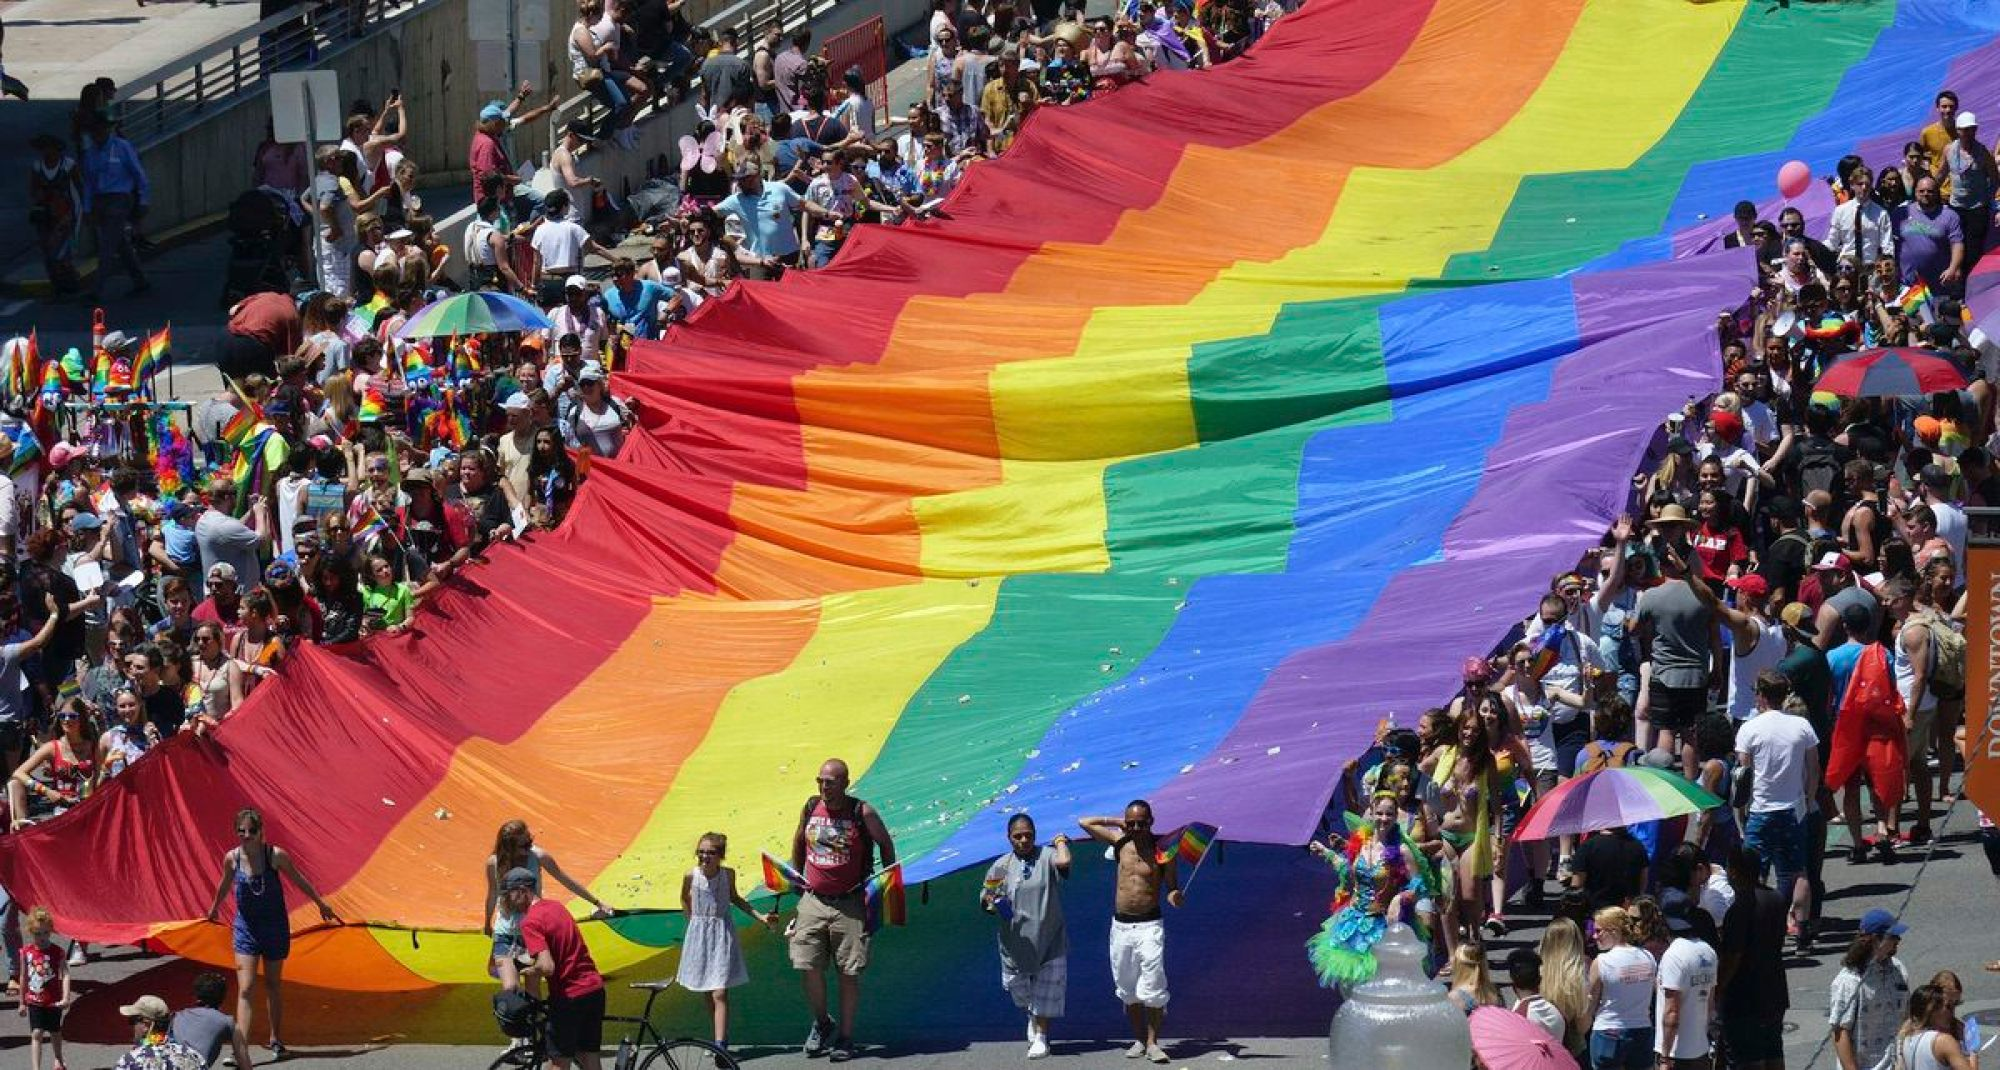 People carry a flag during the Utah Pride parade in Salt Lake City. Salt Lake City police are looking for leads after a man was allegedly attacked while trying to defend two gay men being chased after the Utah Pride Festival. Sunday, June 3, 2018 (AP Photo/Rick Bowmer)